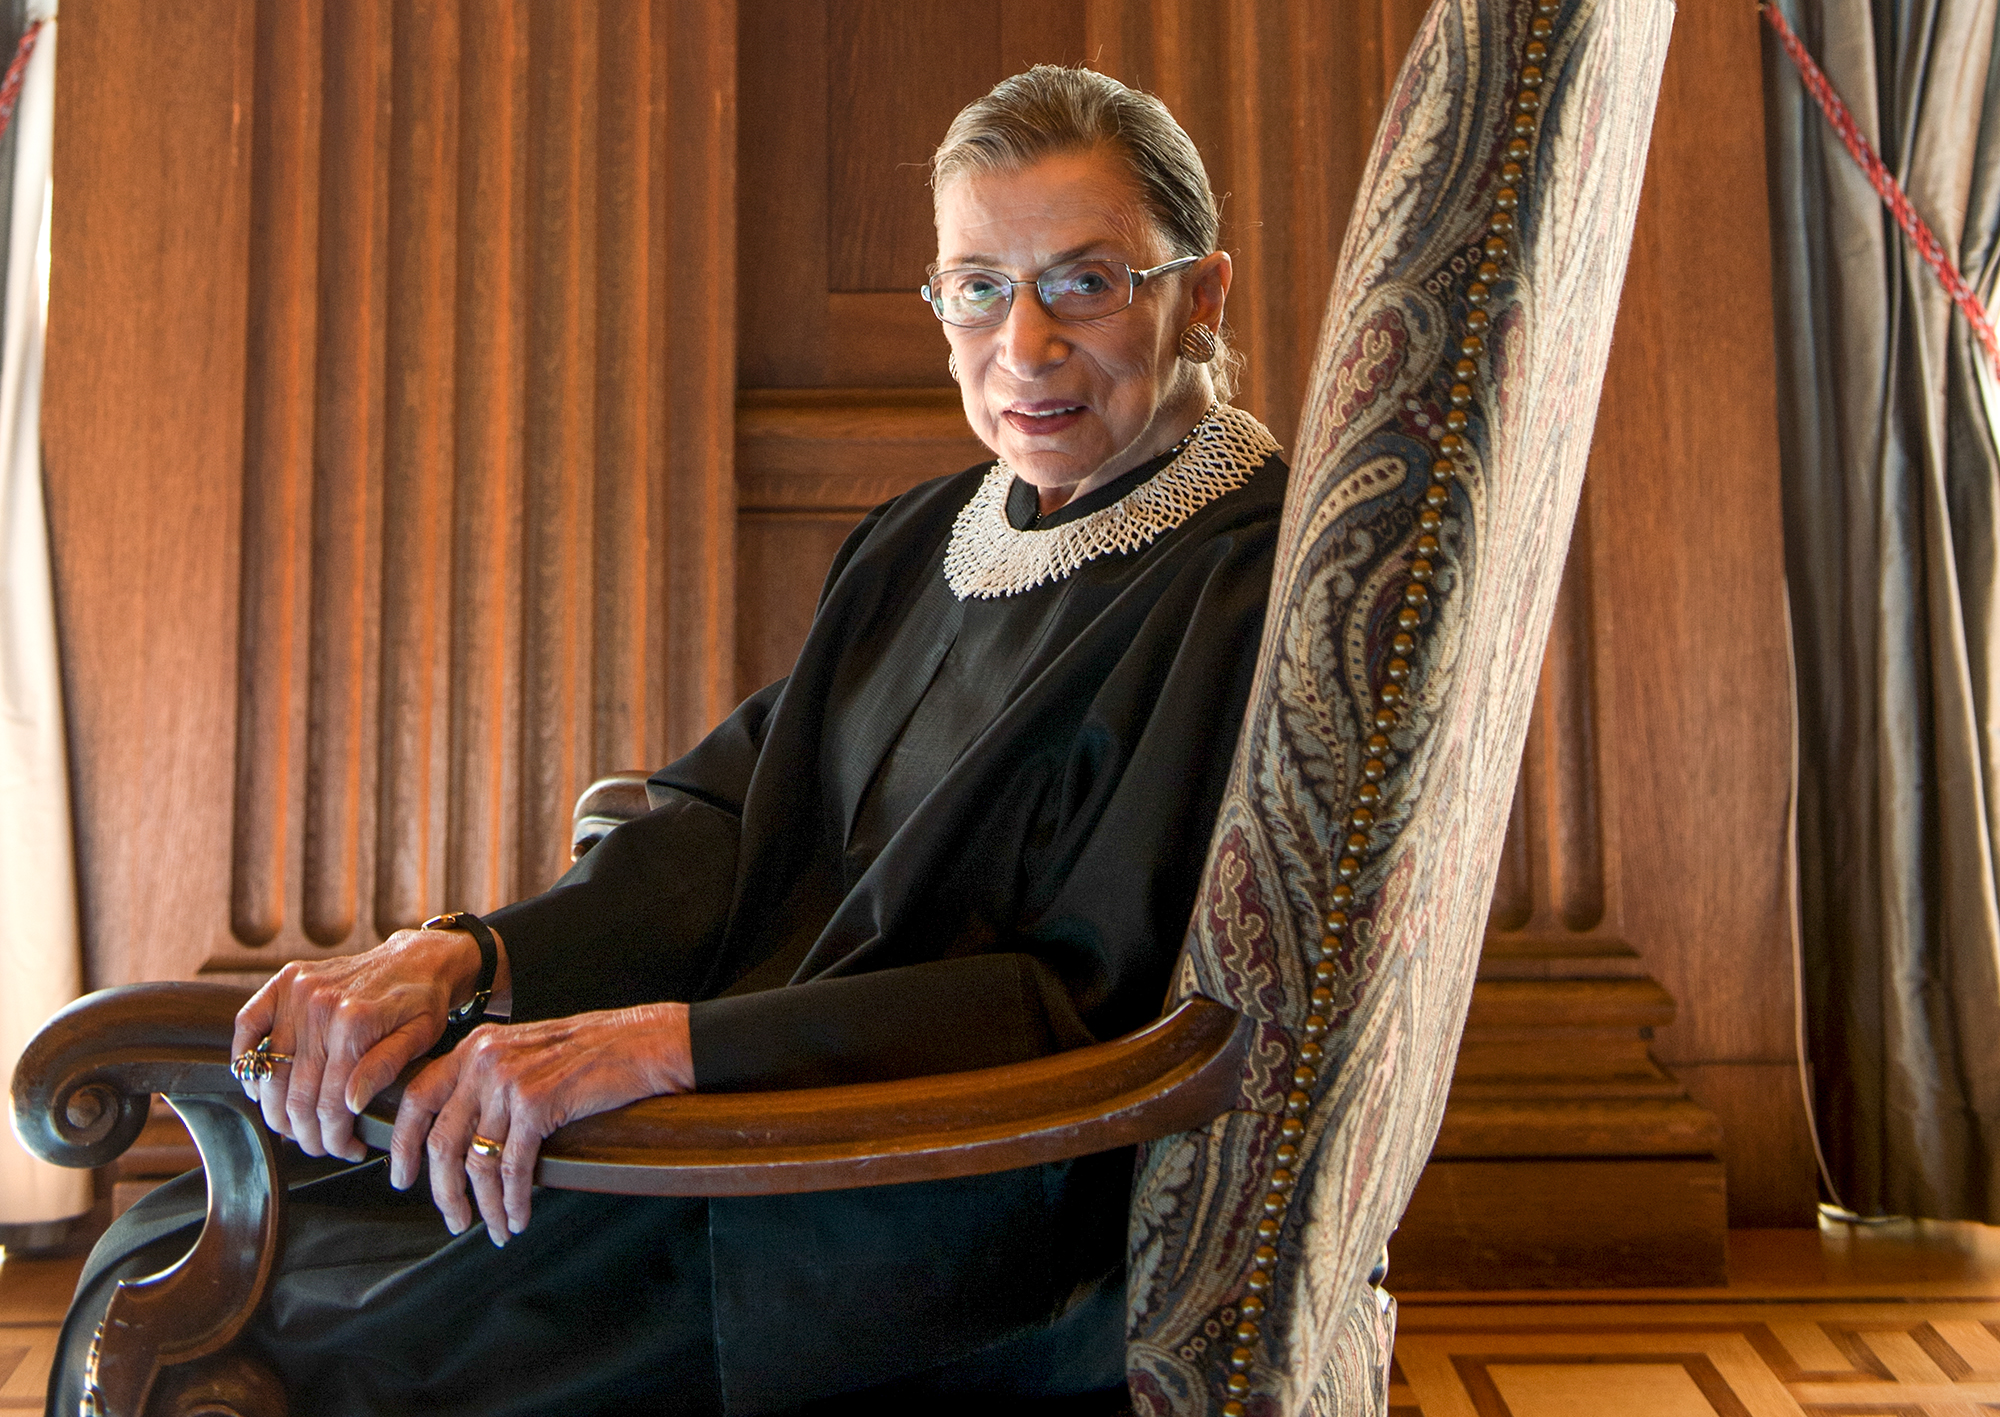 Ruther Bader Ginsberg